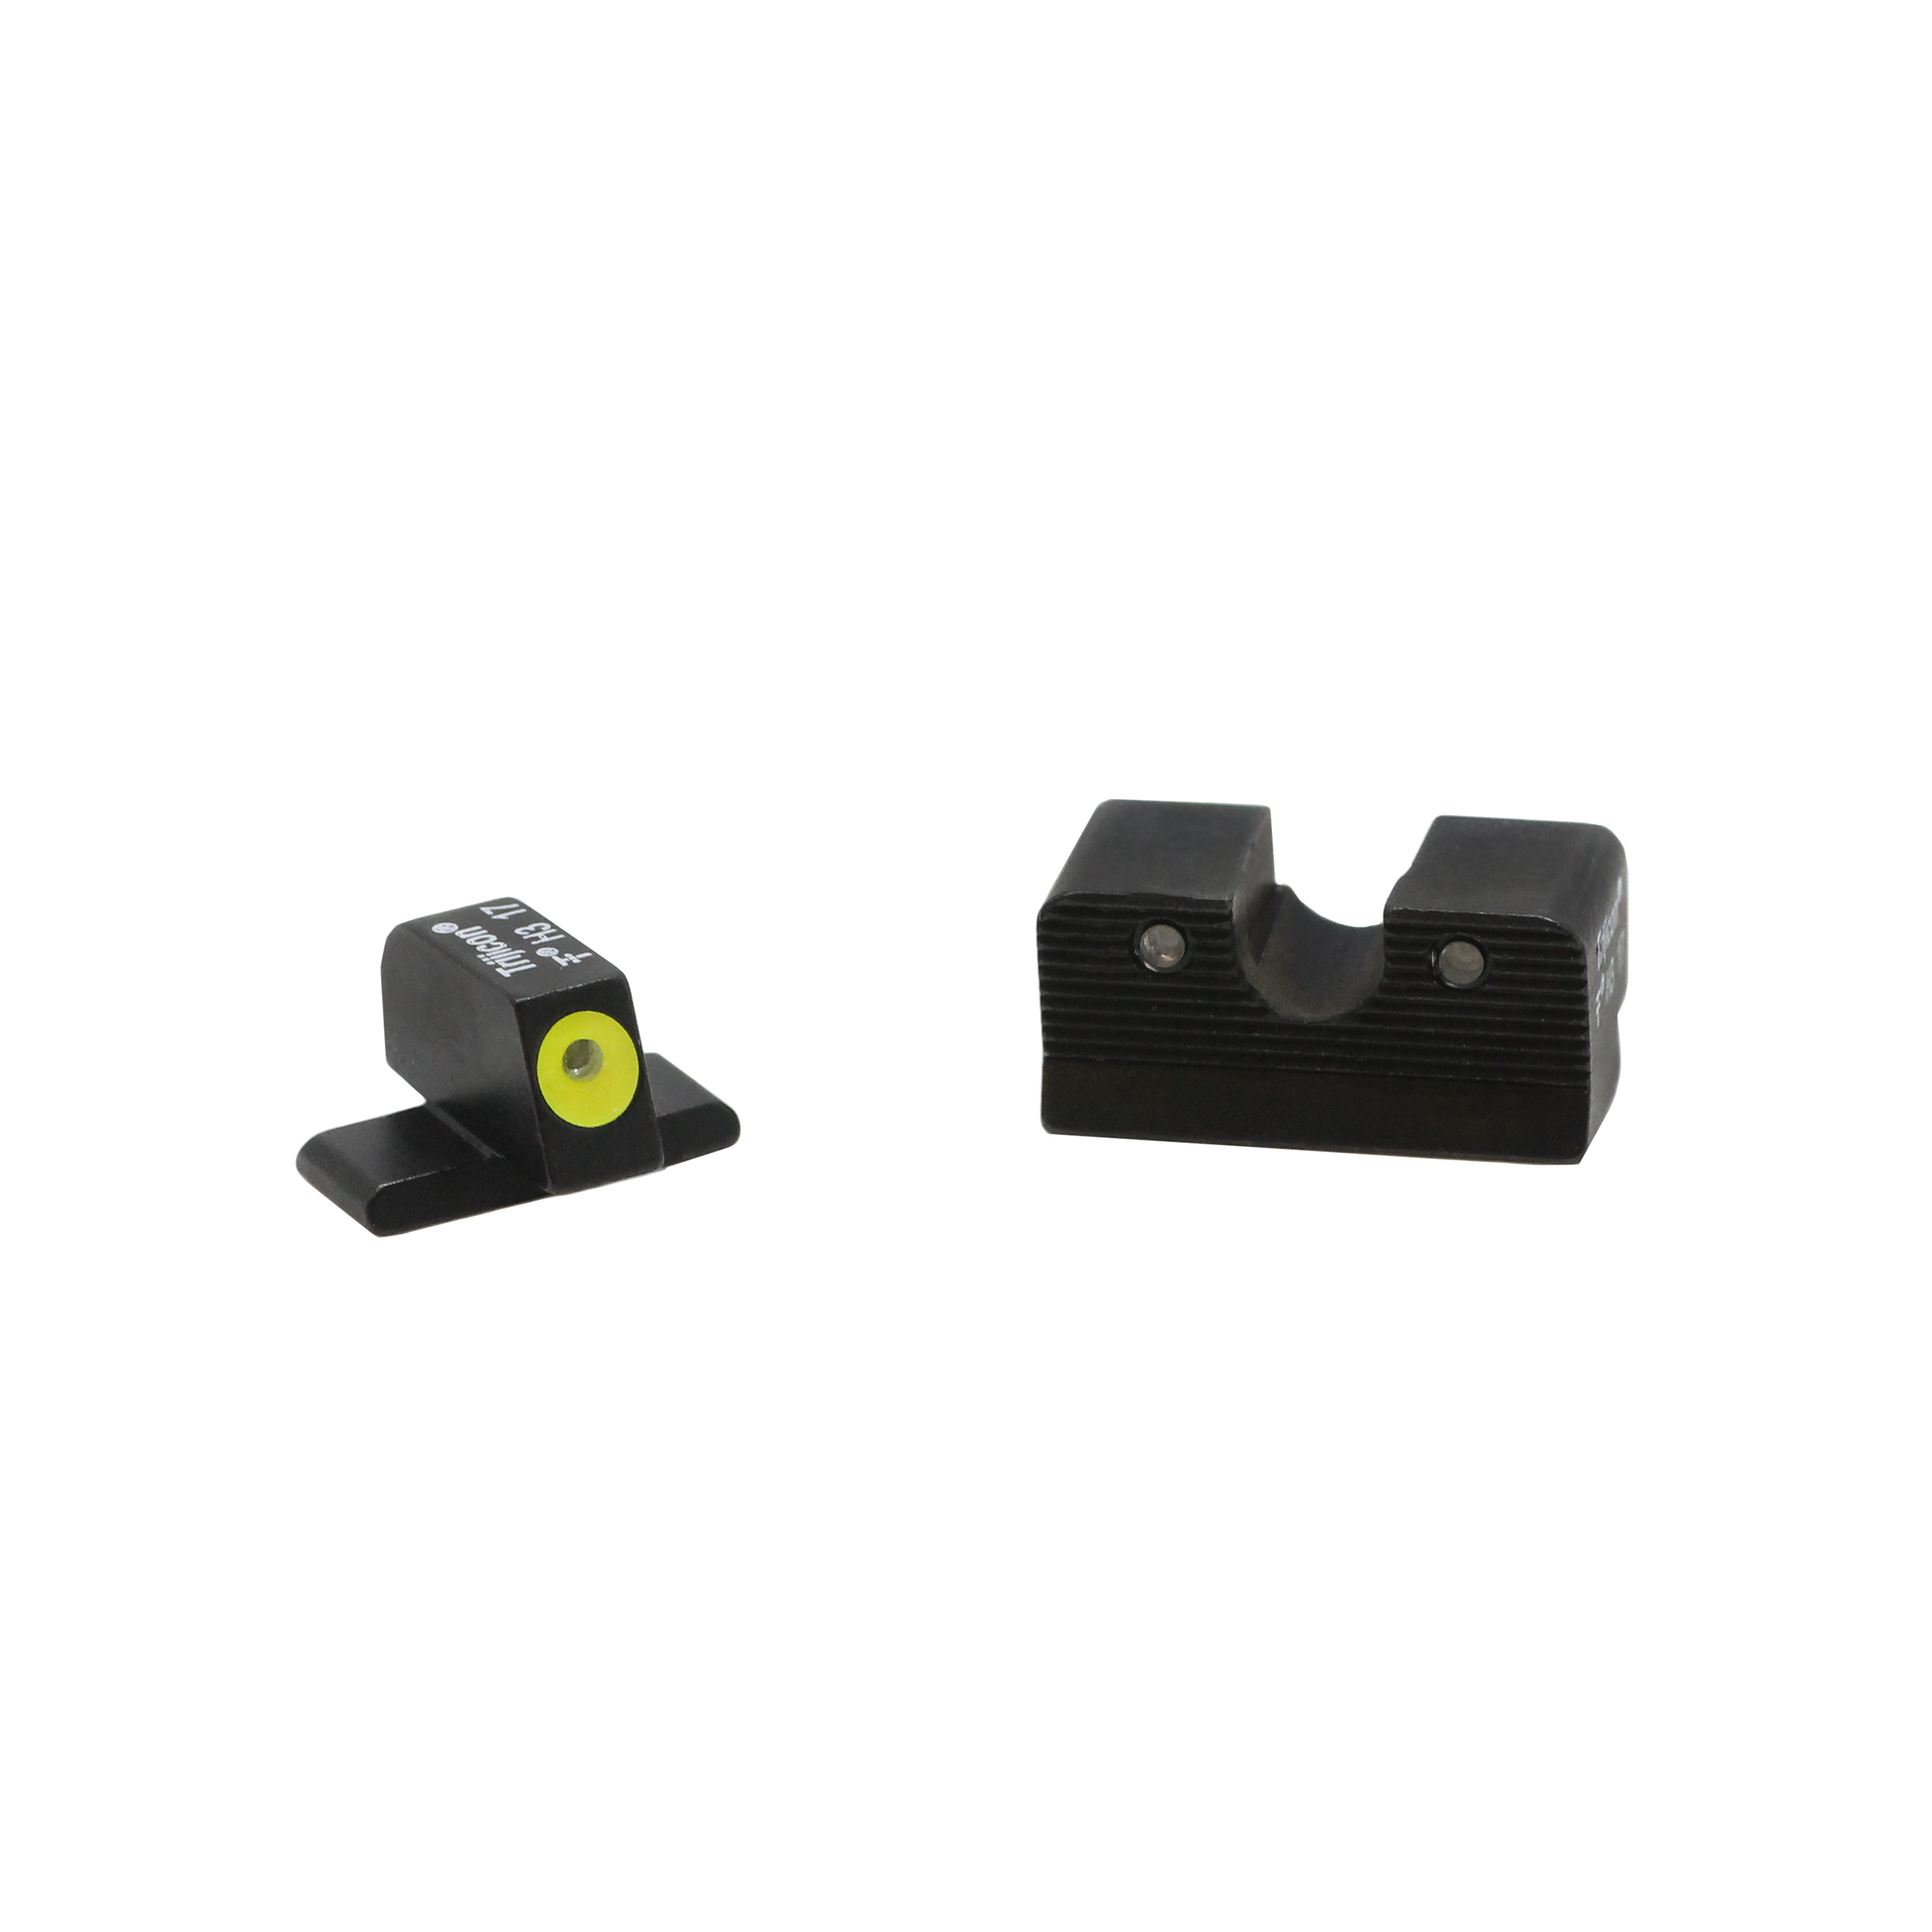 Trijicon FNH HD Night Sight Set Models FN509, Yellow Front Outline Lamp by Trijicon